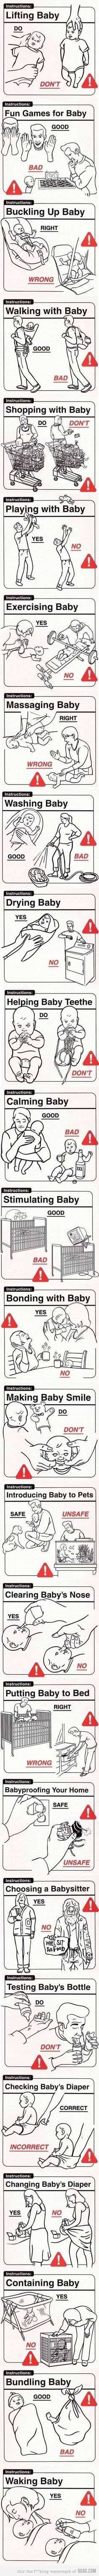 Baby Instructions....i was laughing hysterically reading these!